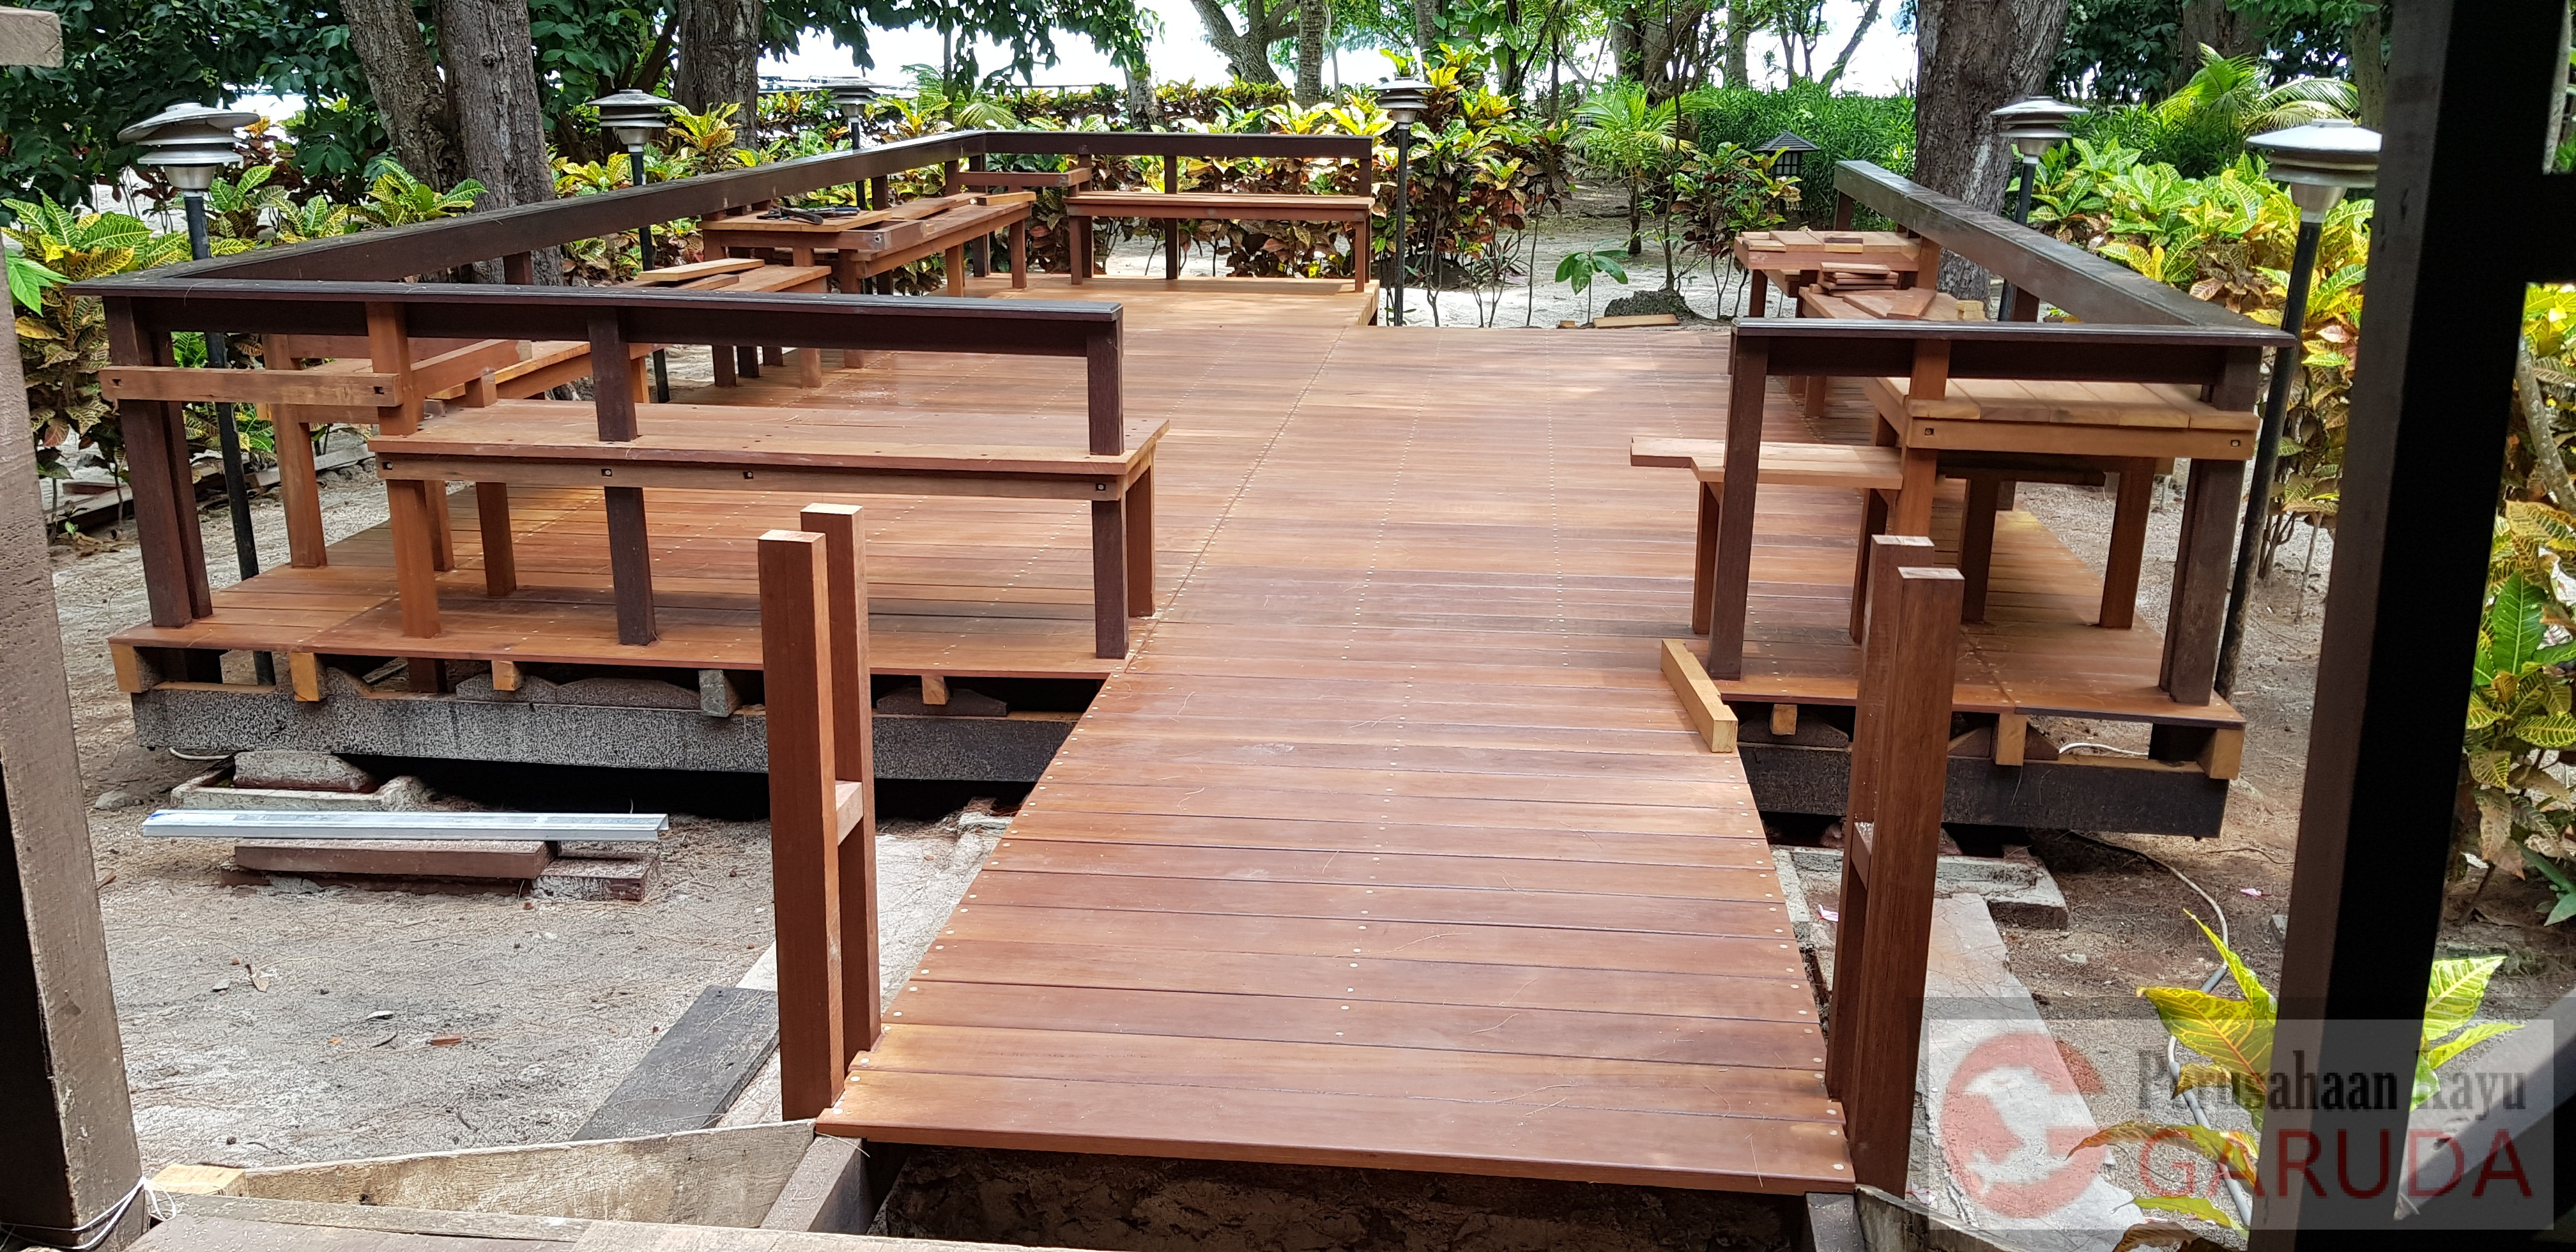 Decking-Kayu-Ulin-1